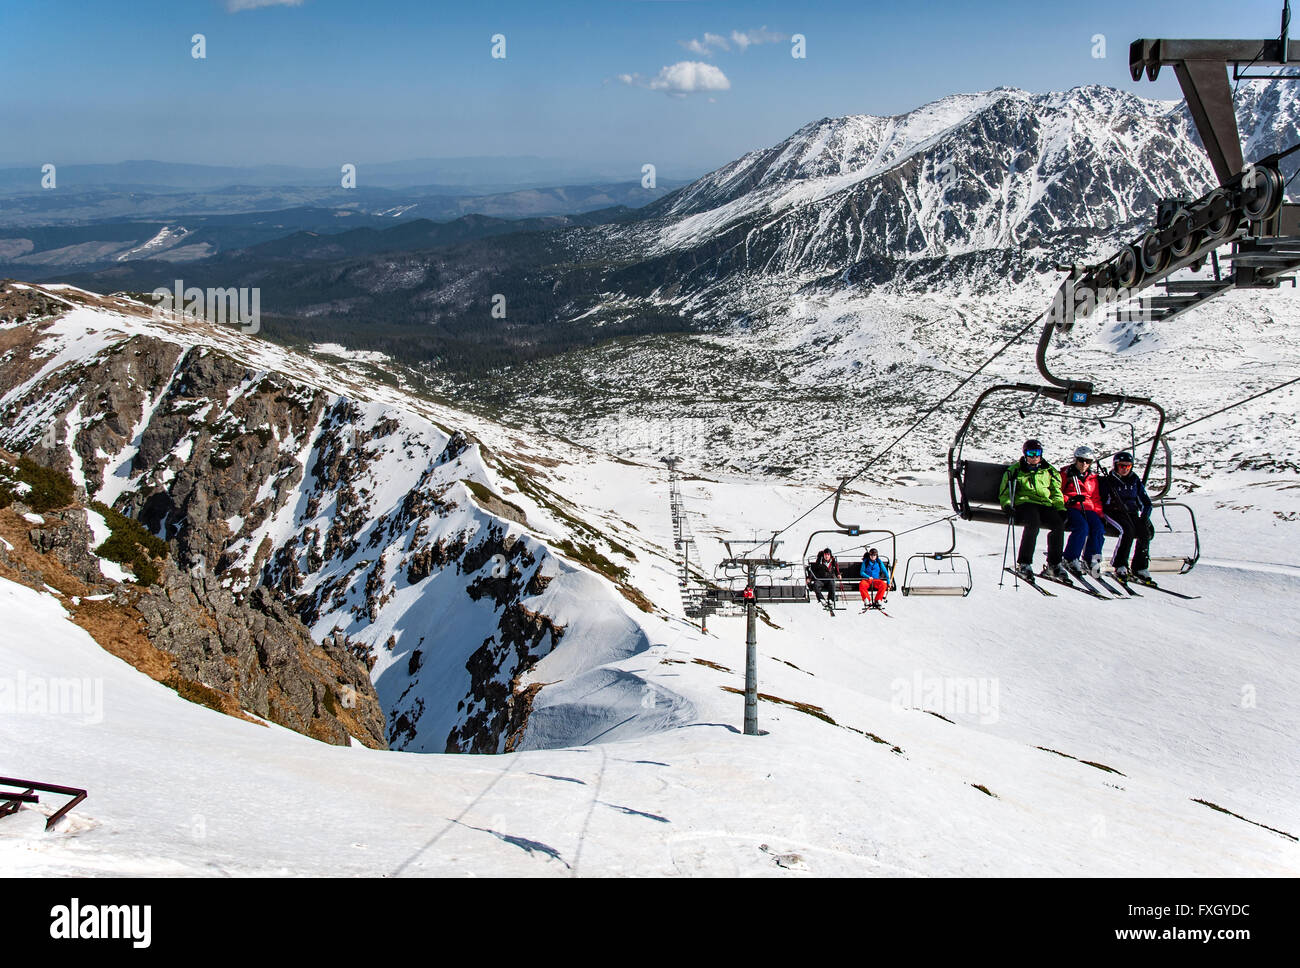 End of skiing season on Kasprowy Wierch. Ski slopes and skiers on the chairlift at Hala Gasienicowa in Tatra mountains - Stock Image